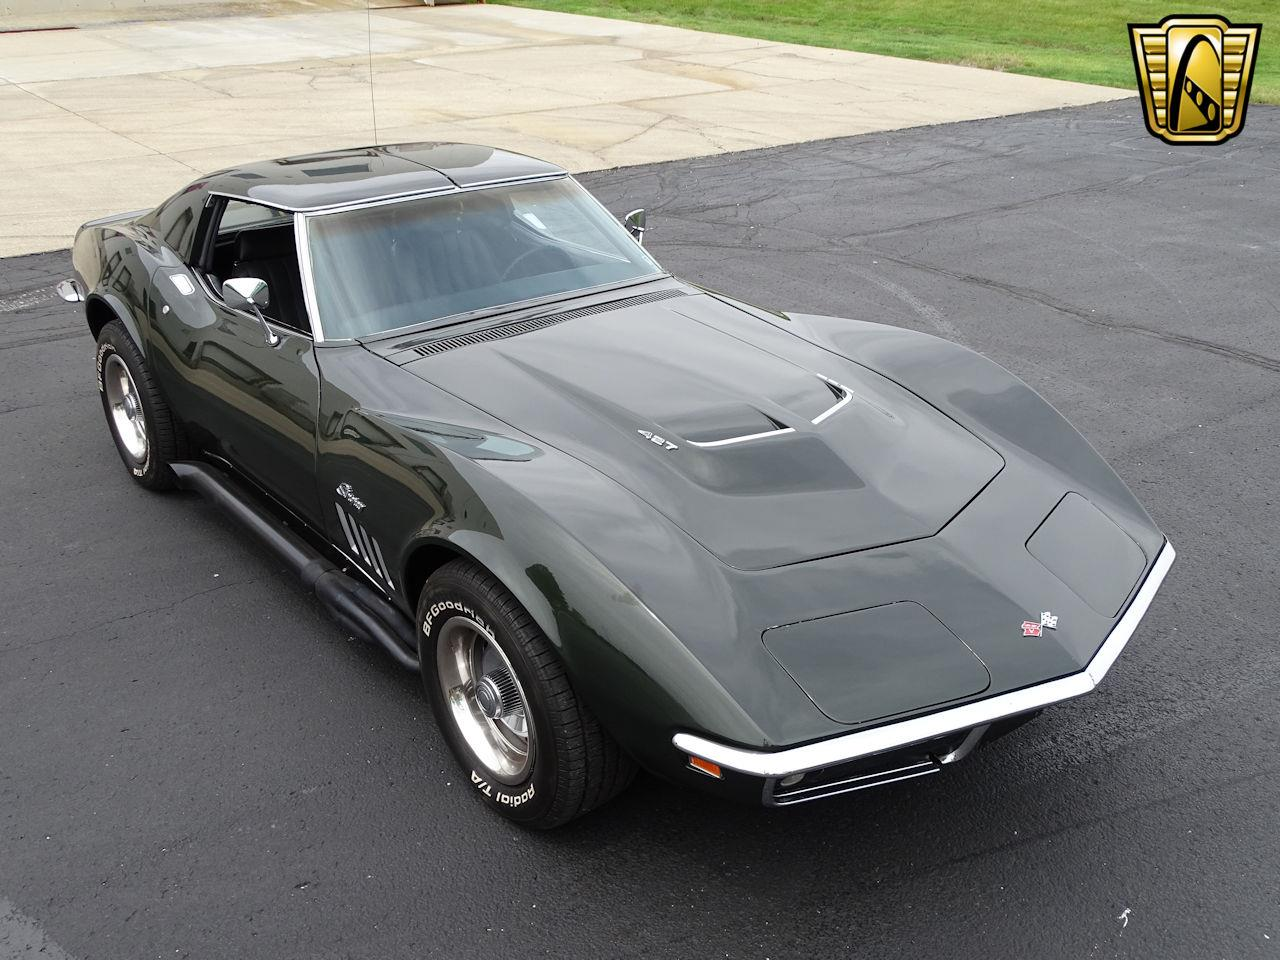 Large Picture of '69 Chevrolet Corvette located in Indianapolis Indiana Offered by Gateway Classic Cars - Indianapolis - L6RX